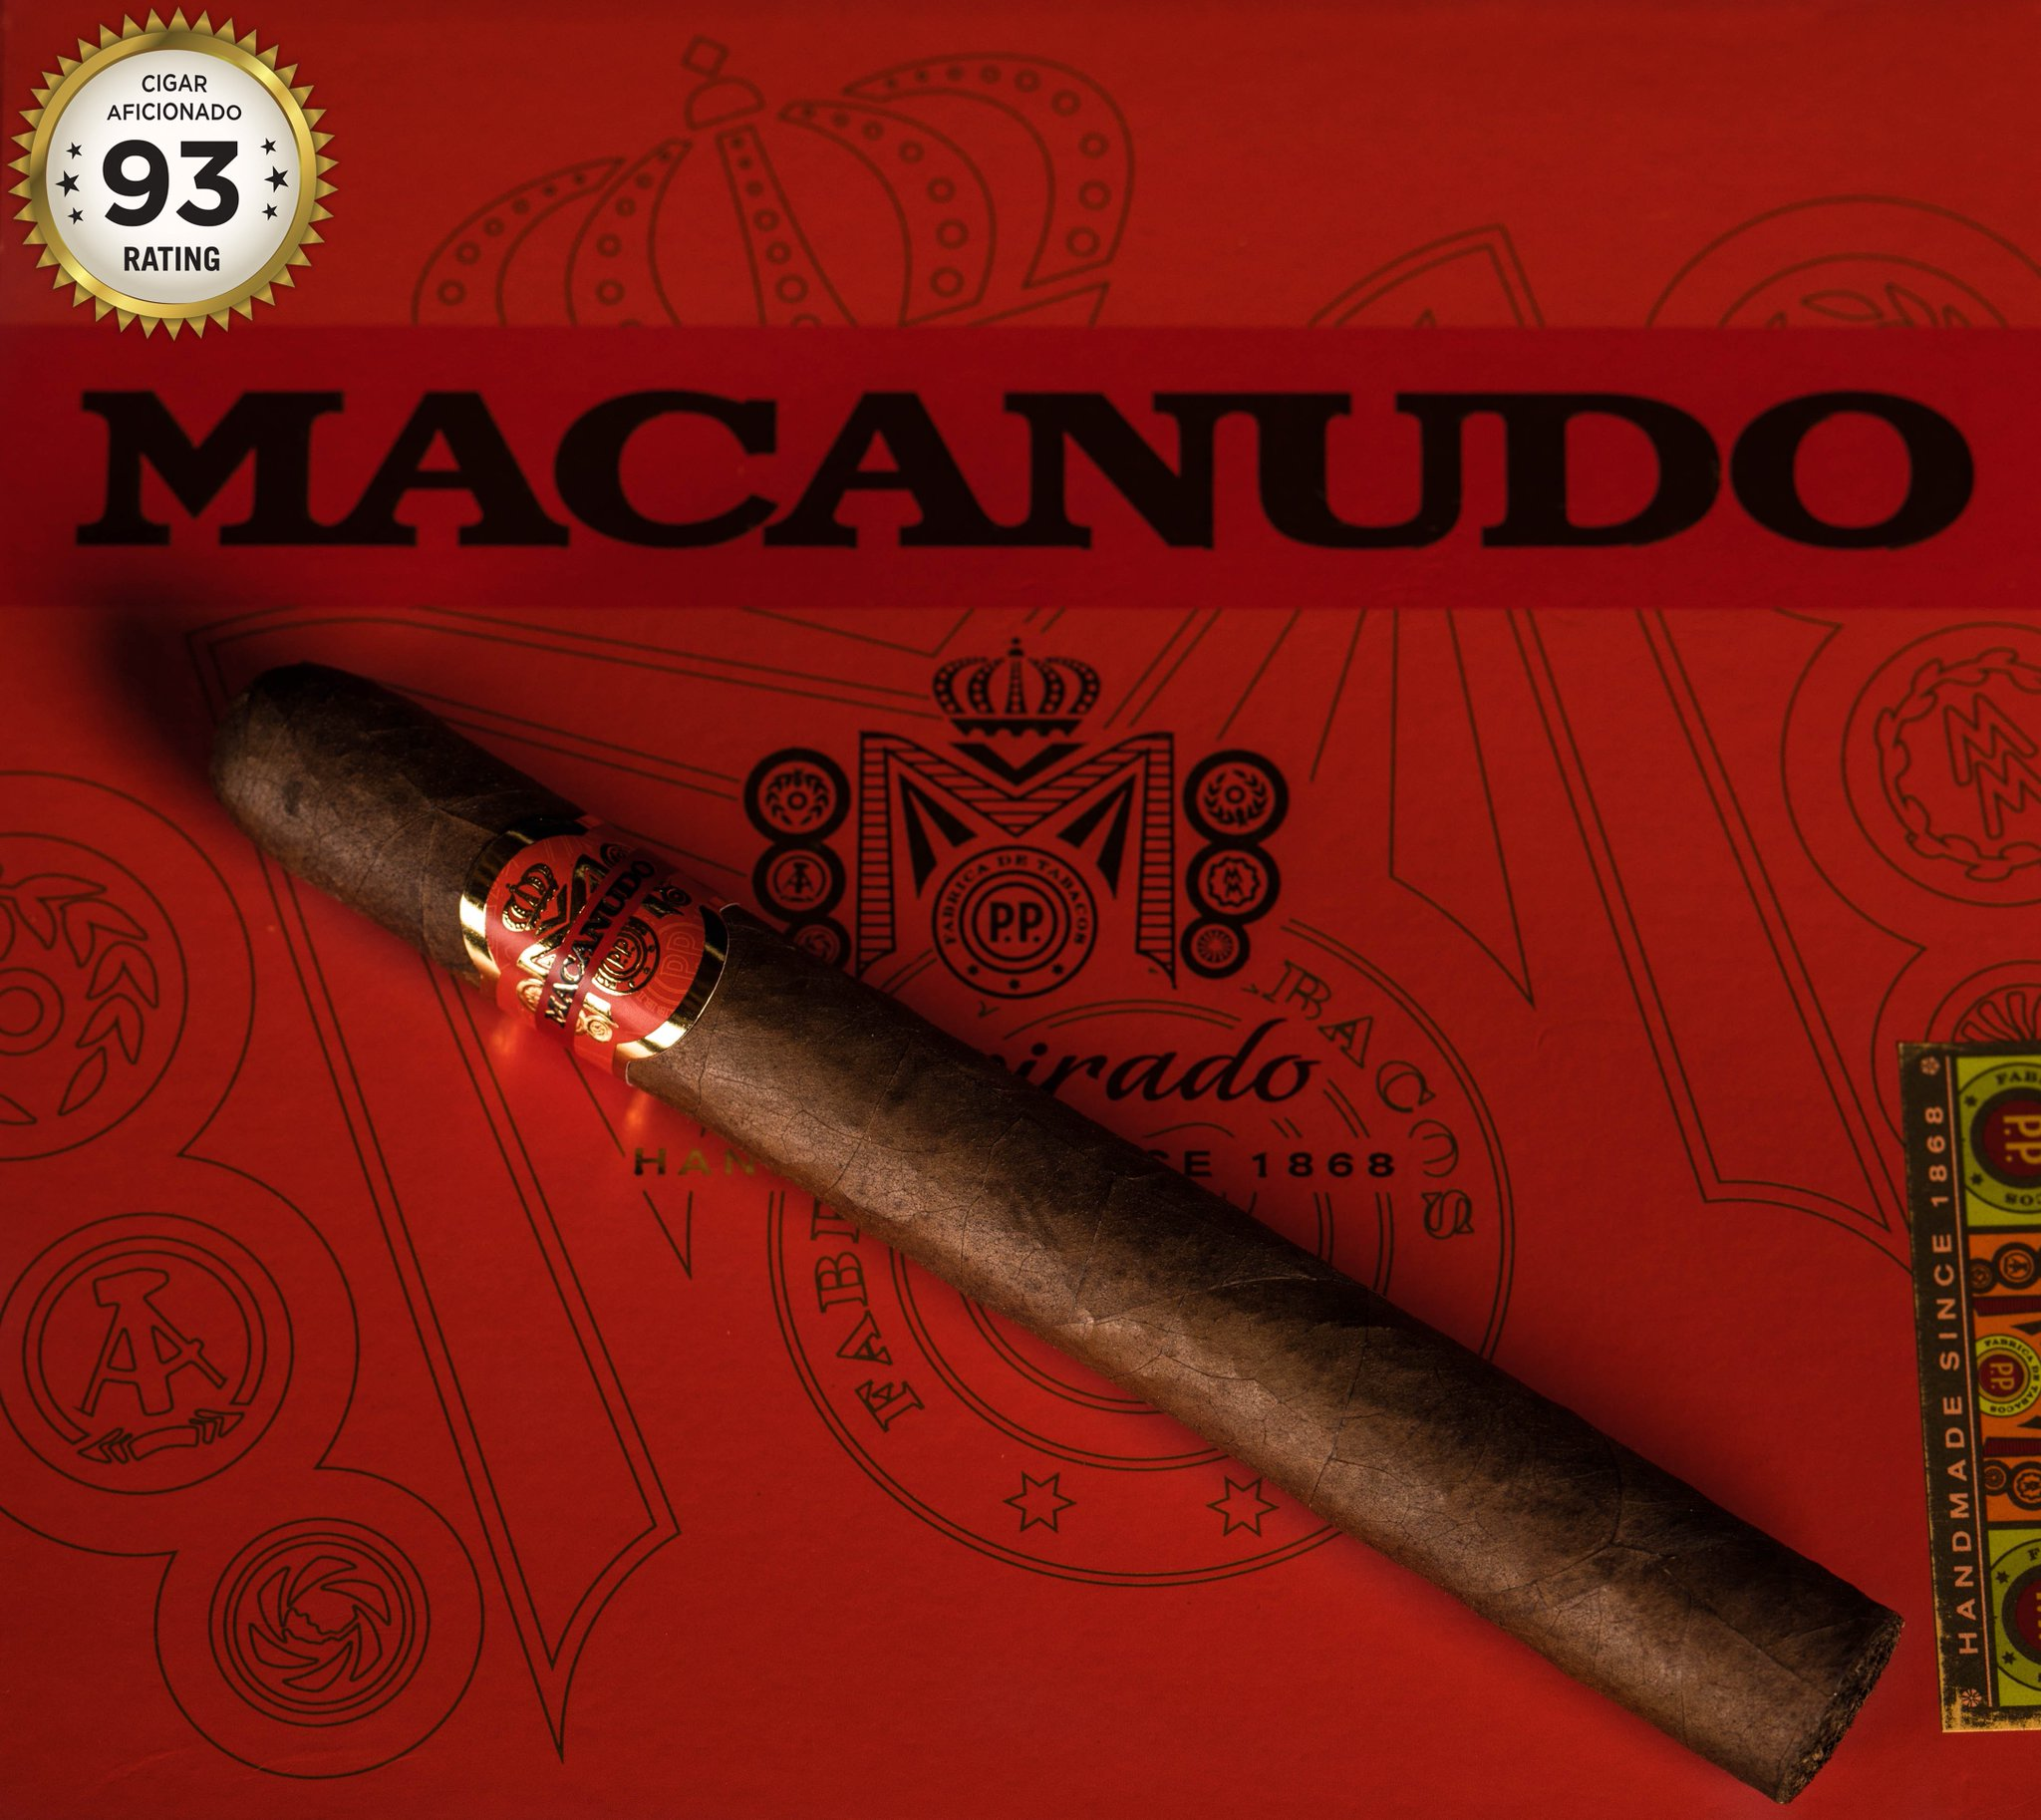 #Macanudo Inspirado Orange scored 93 points on Cigar Insider! Thanks, @CigarAficMag for the excellent rating! https://t.co/wGLJnf2huE